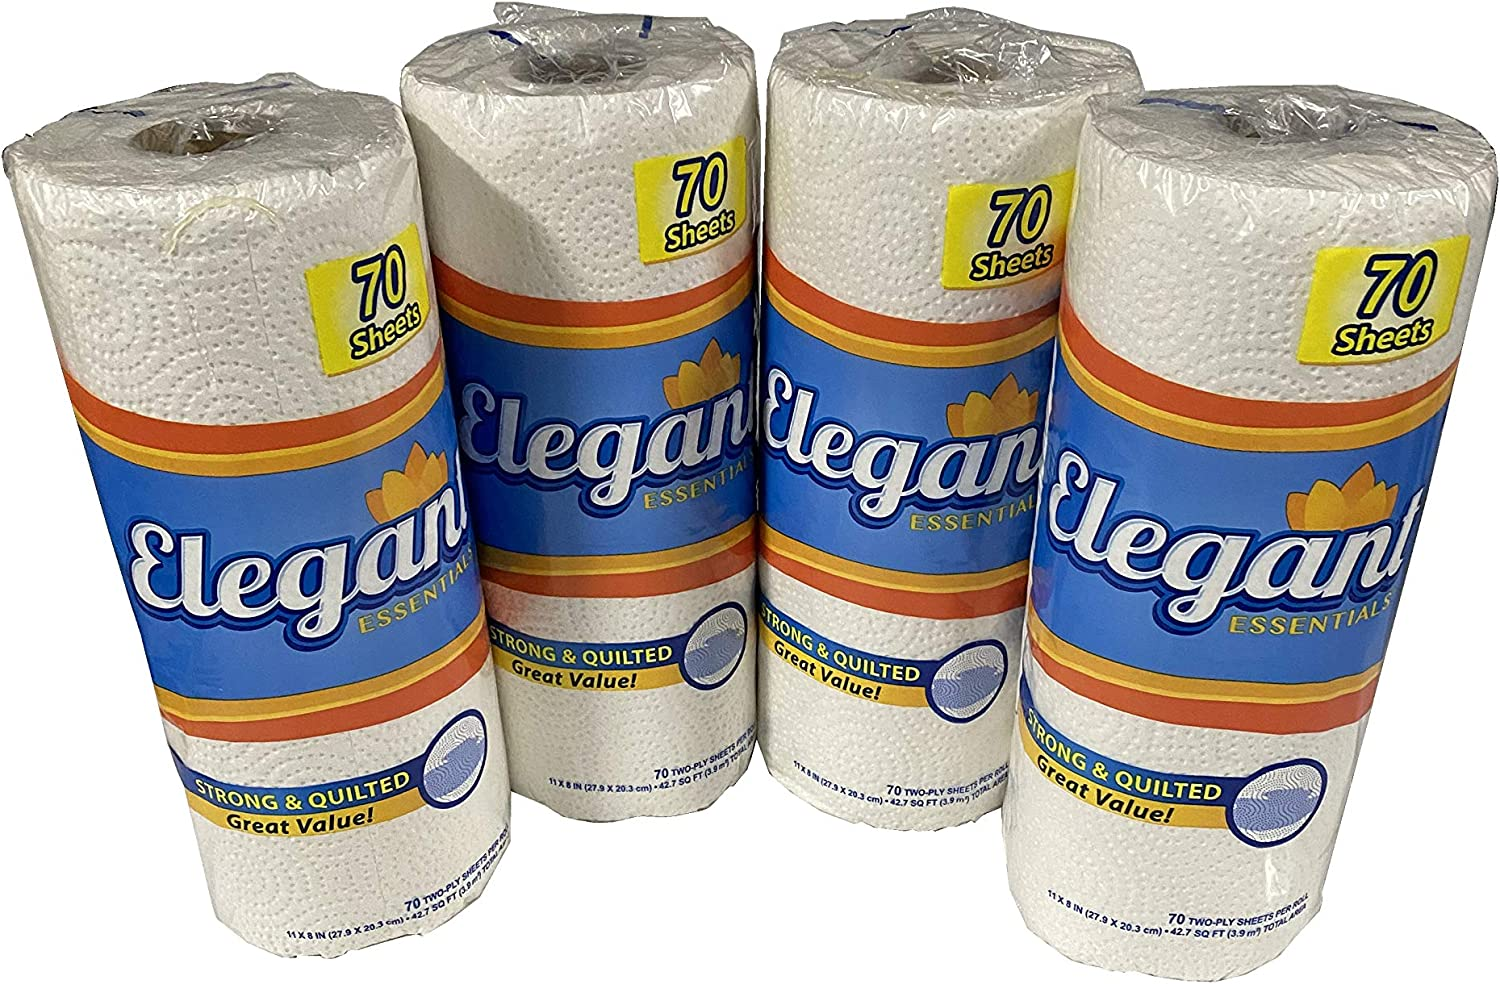 70 2-Ply Sheets Strong /& Quilted Premium Toilet Tissue//Premieum Paper Towels 4 Rolls